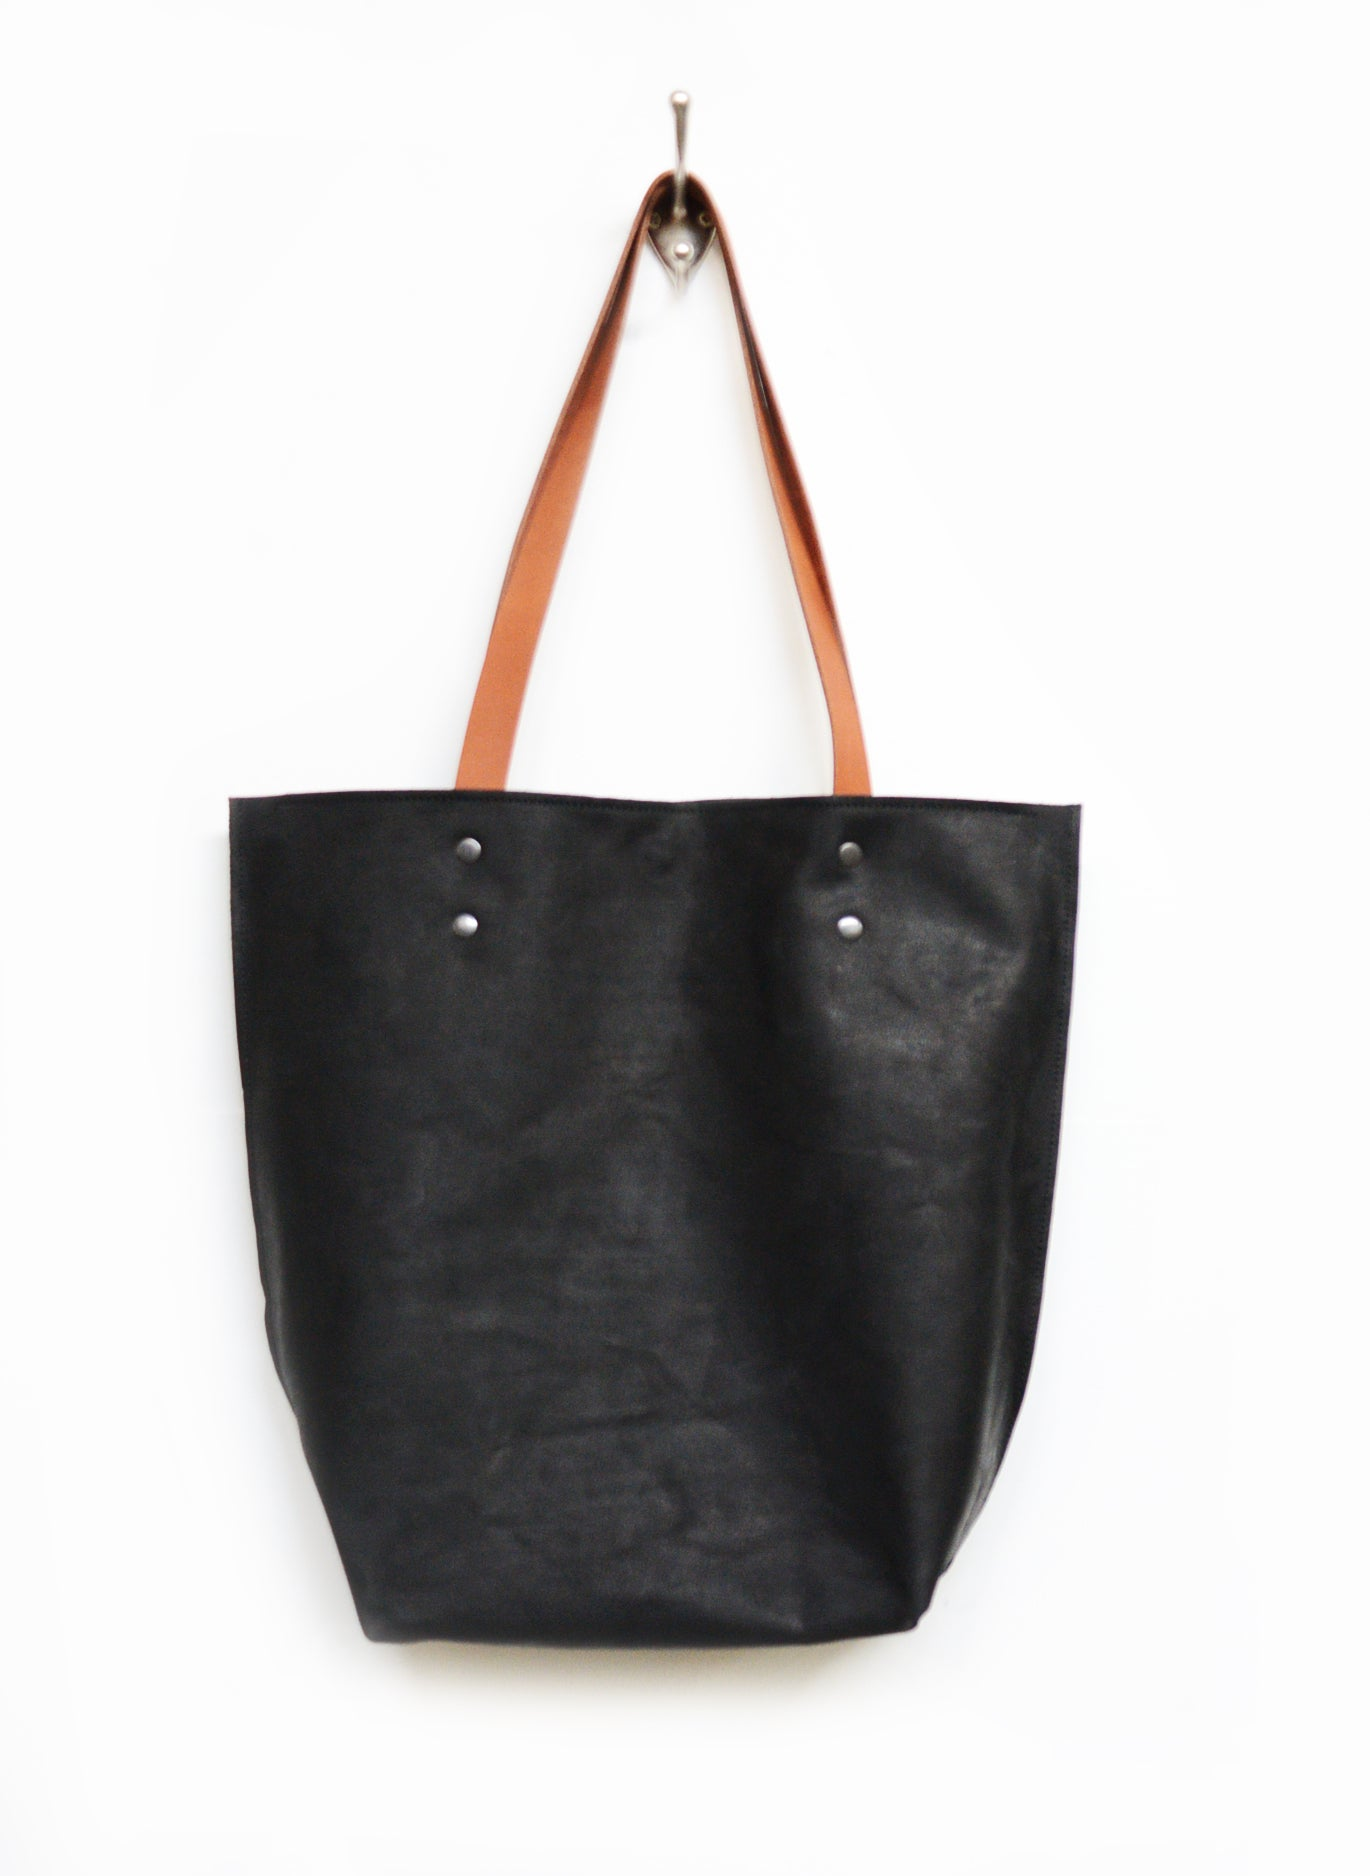 Image of Crisp Black Leather Tote Bag